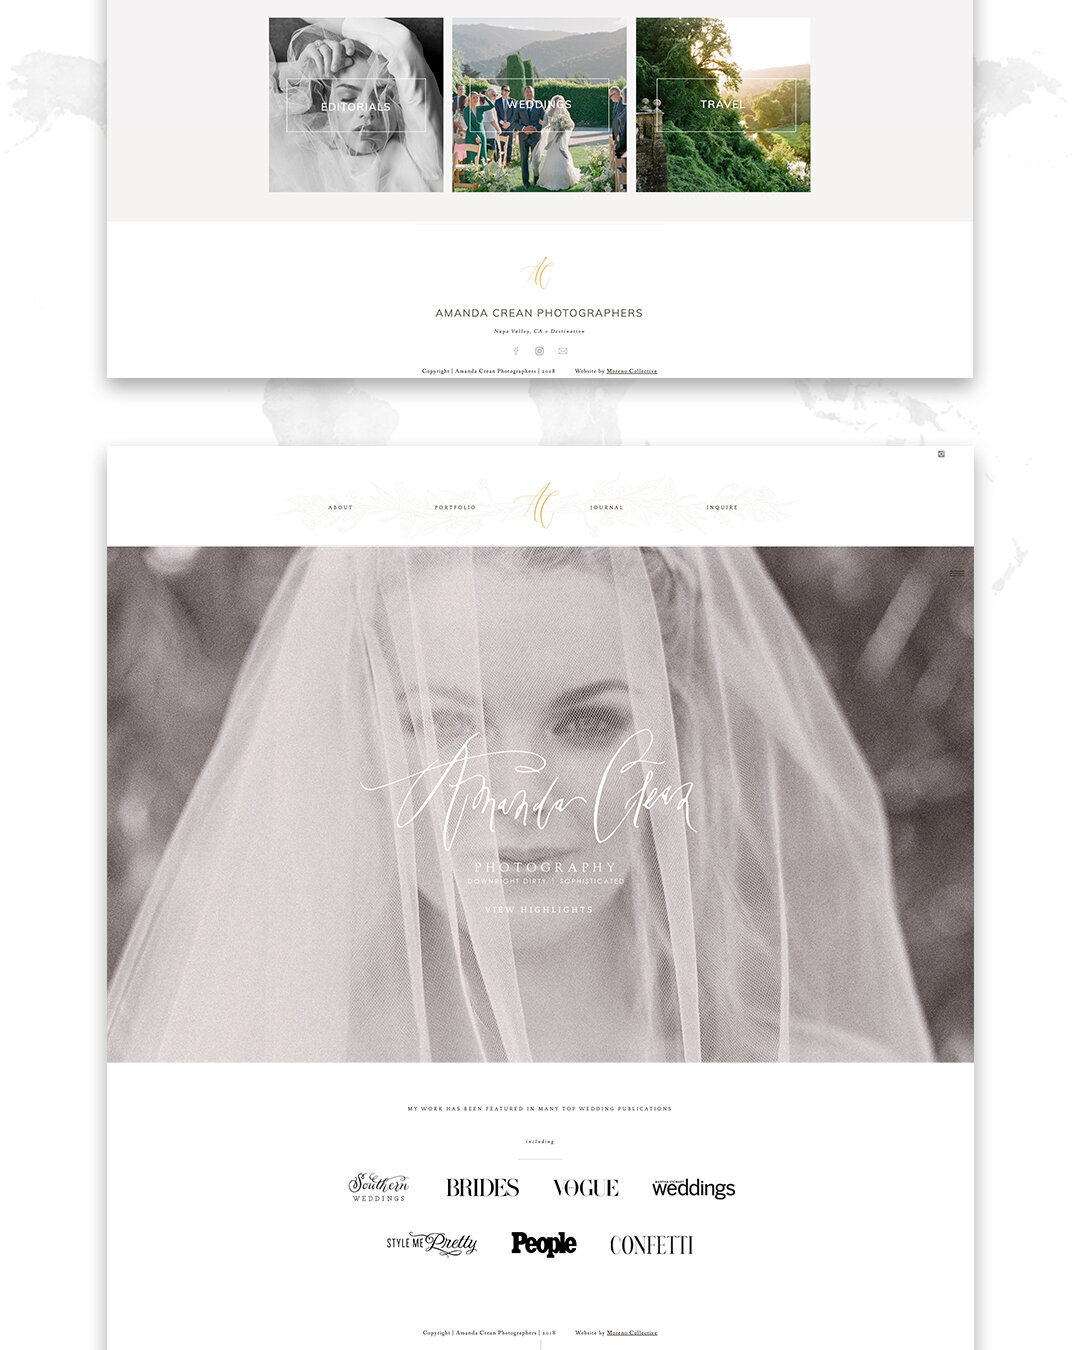 Showit-template-help-moreno-collective-amanda-crean